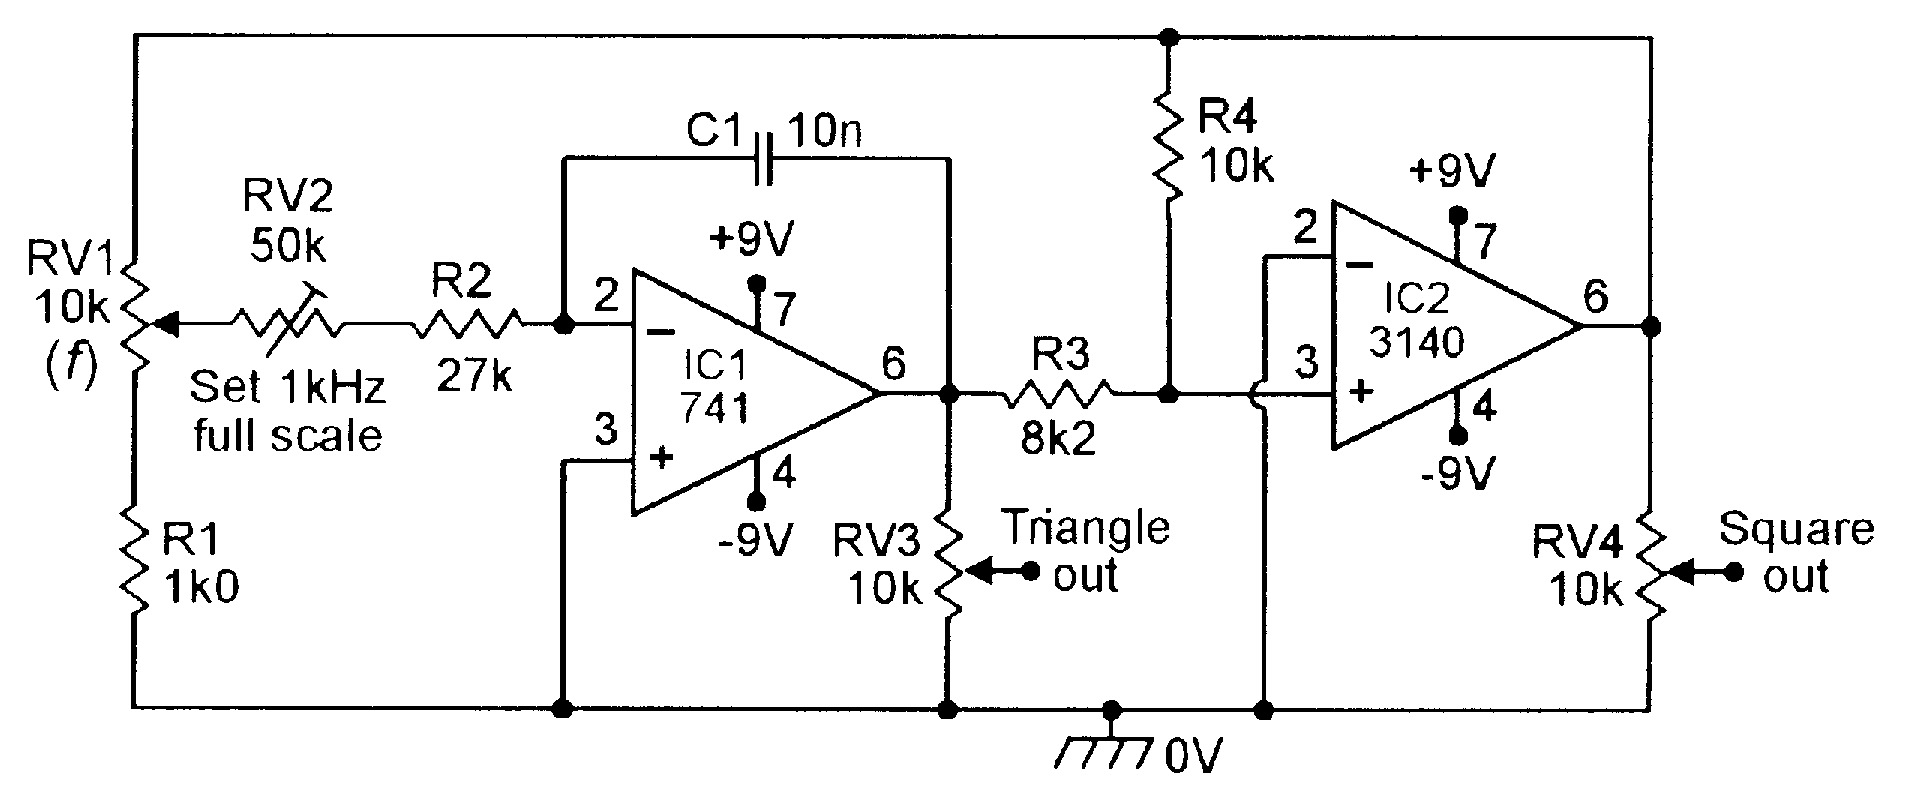 Op Amp Cookbook Part 3 Nuts Volts Magazine Transistoroscillatorcircuits Twotransistorsinewaveoscillator 100hz 1khz Triangle Square Function Generator